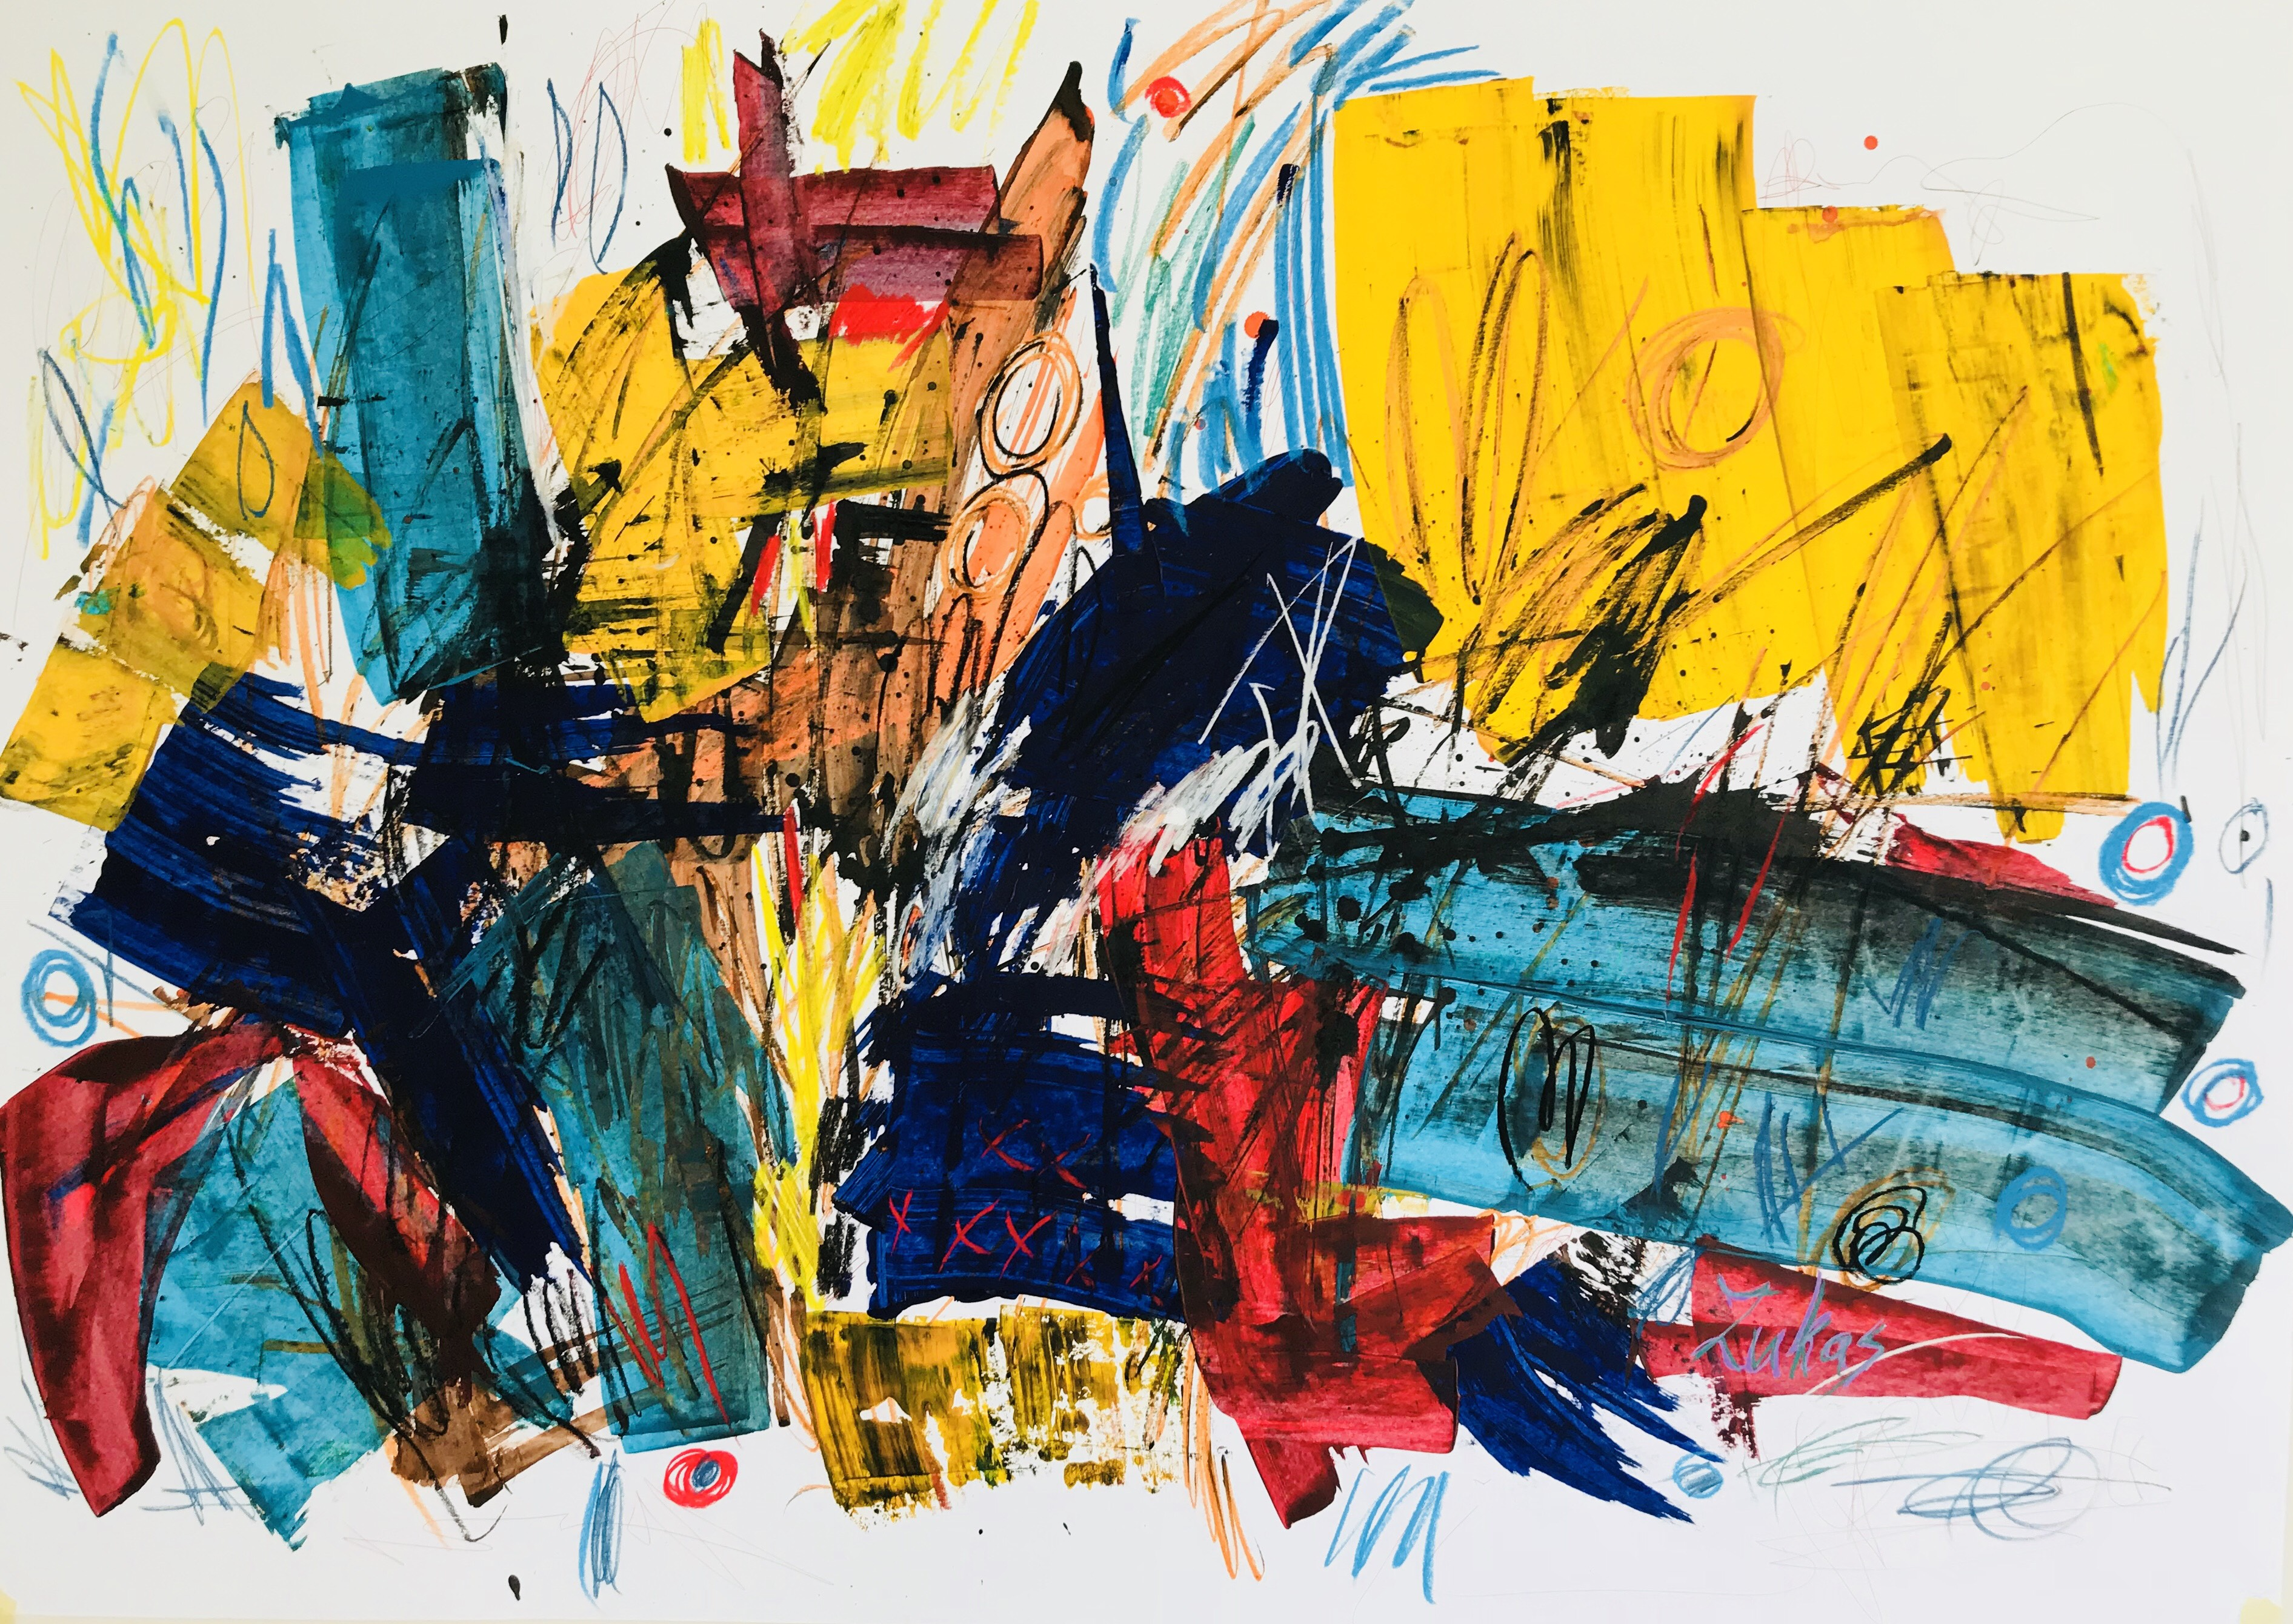 Composition. Untitled. Mixed media on paper. 70×100 cm.